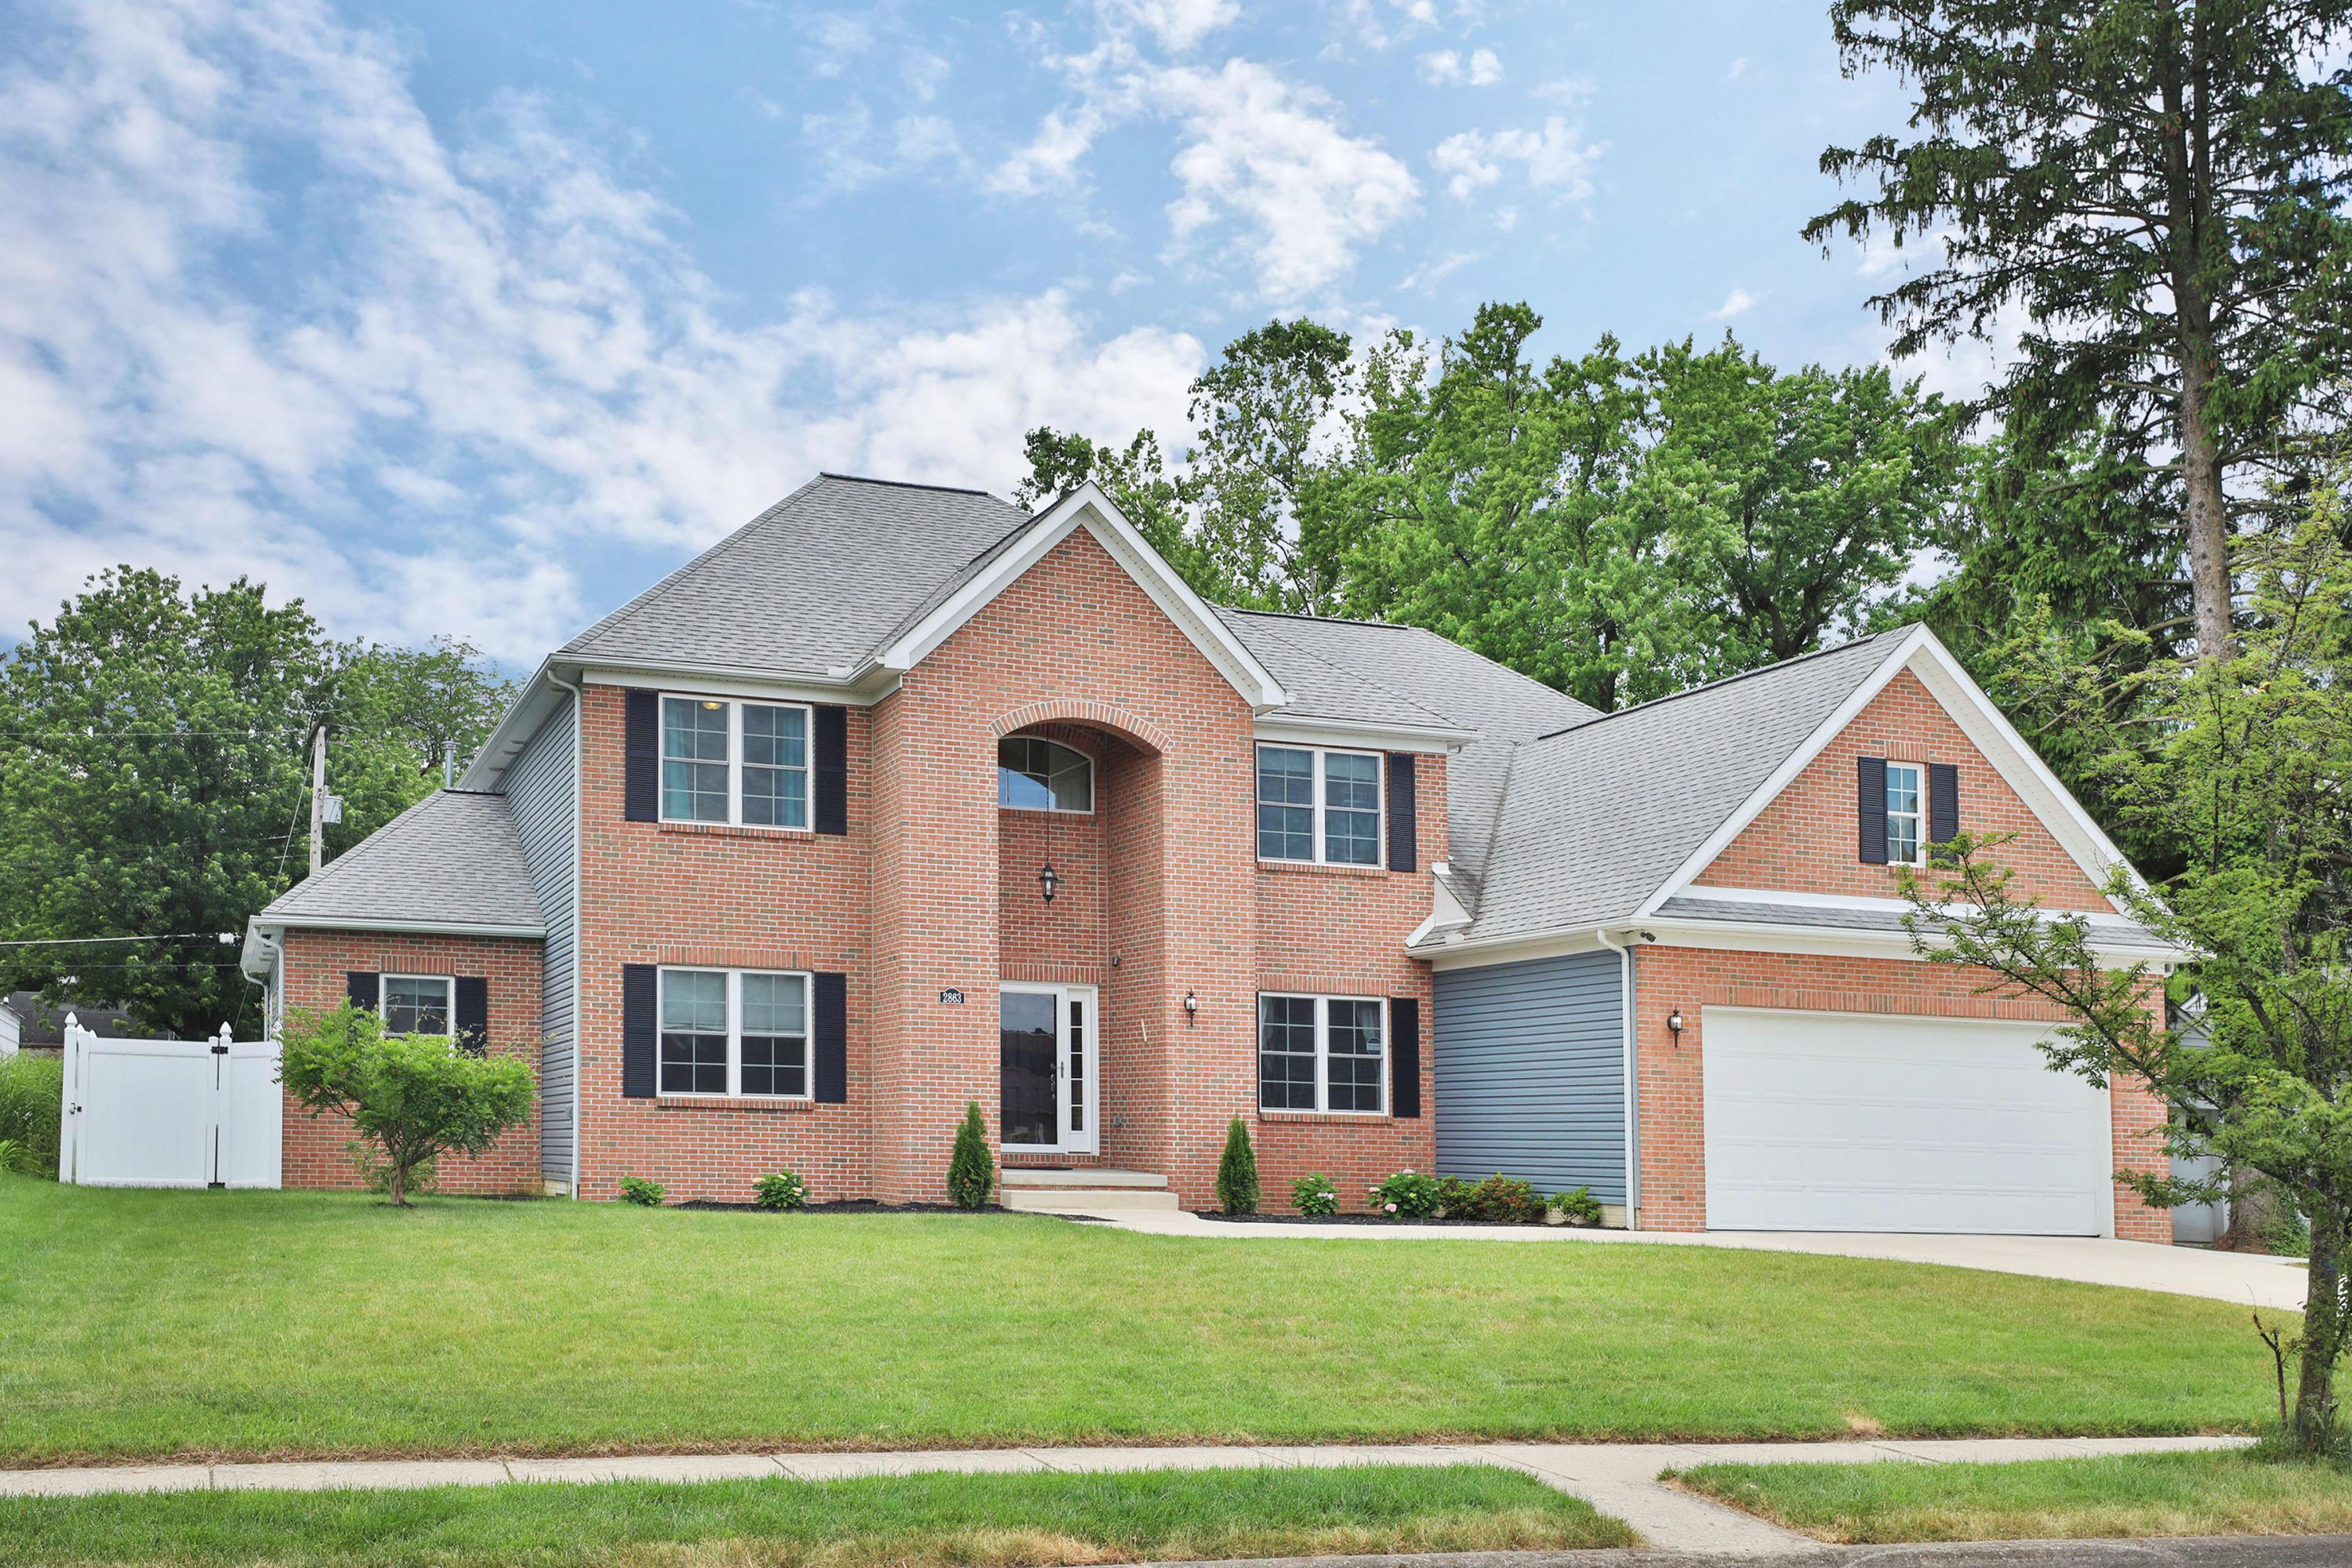 2863 Bexley Park Road, Columbus, Ohio 43209, 8 Bedrooms Bedrooms, ,6 BathroomsBathrooms,Residential,For Sale,Bexley Park,220019487